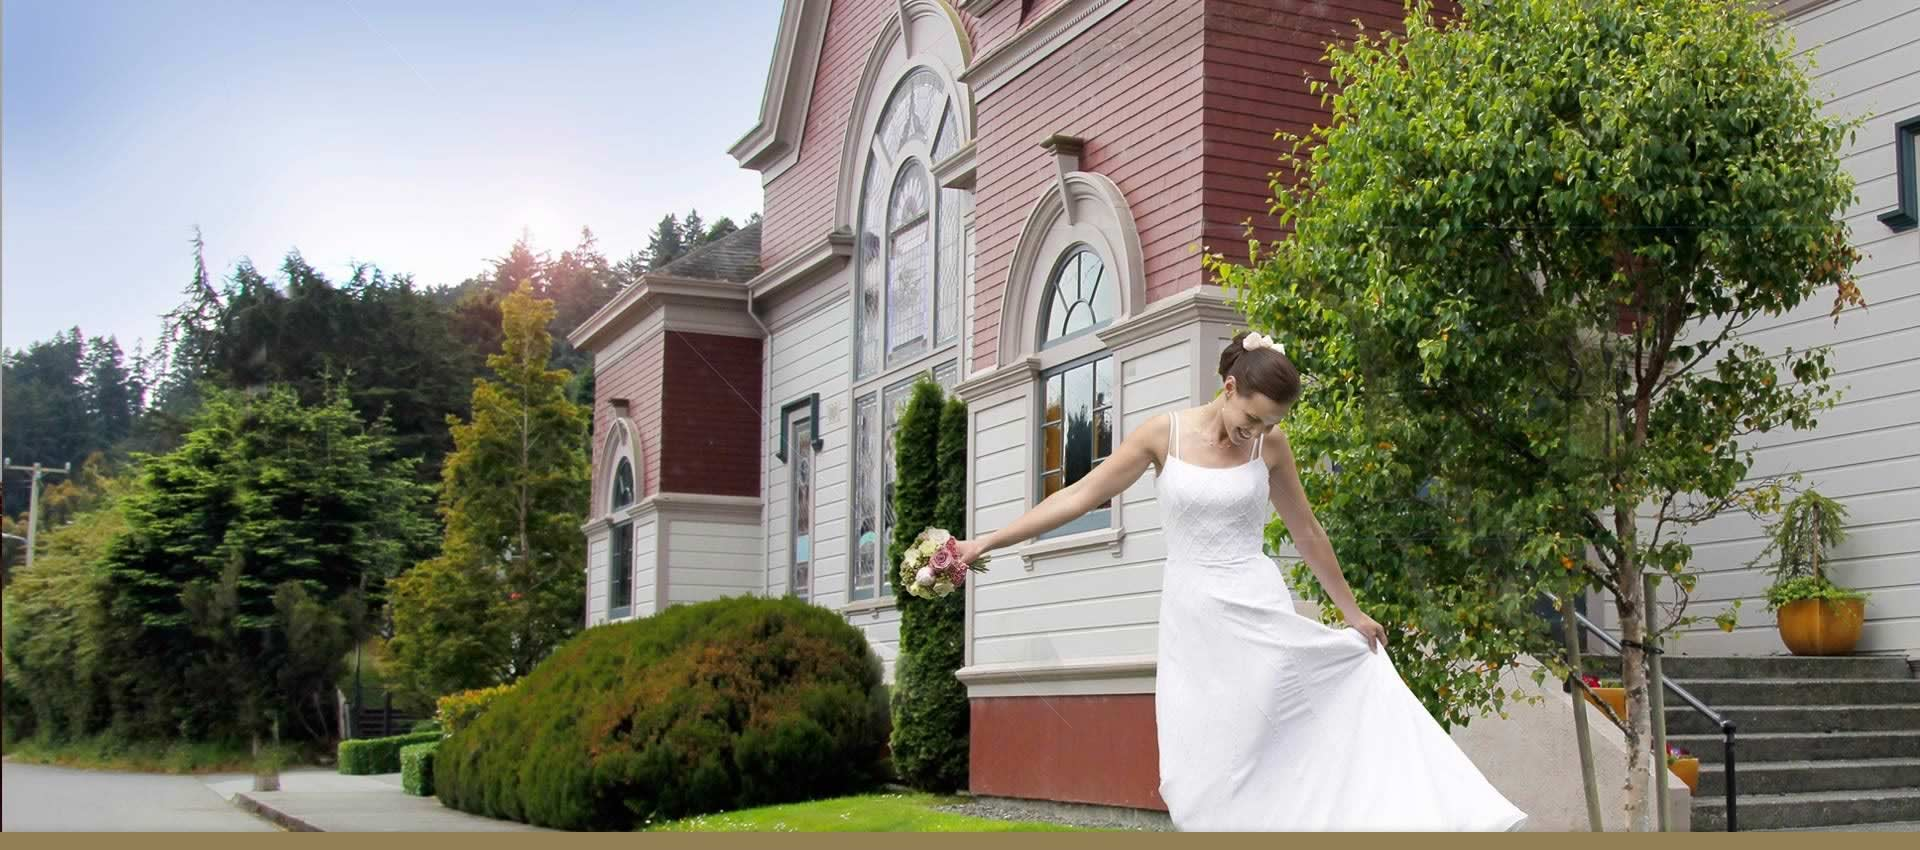 Weddings and Events at The Victorian Inn